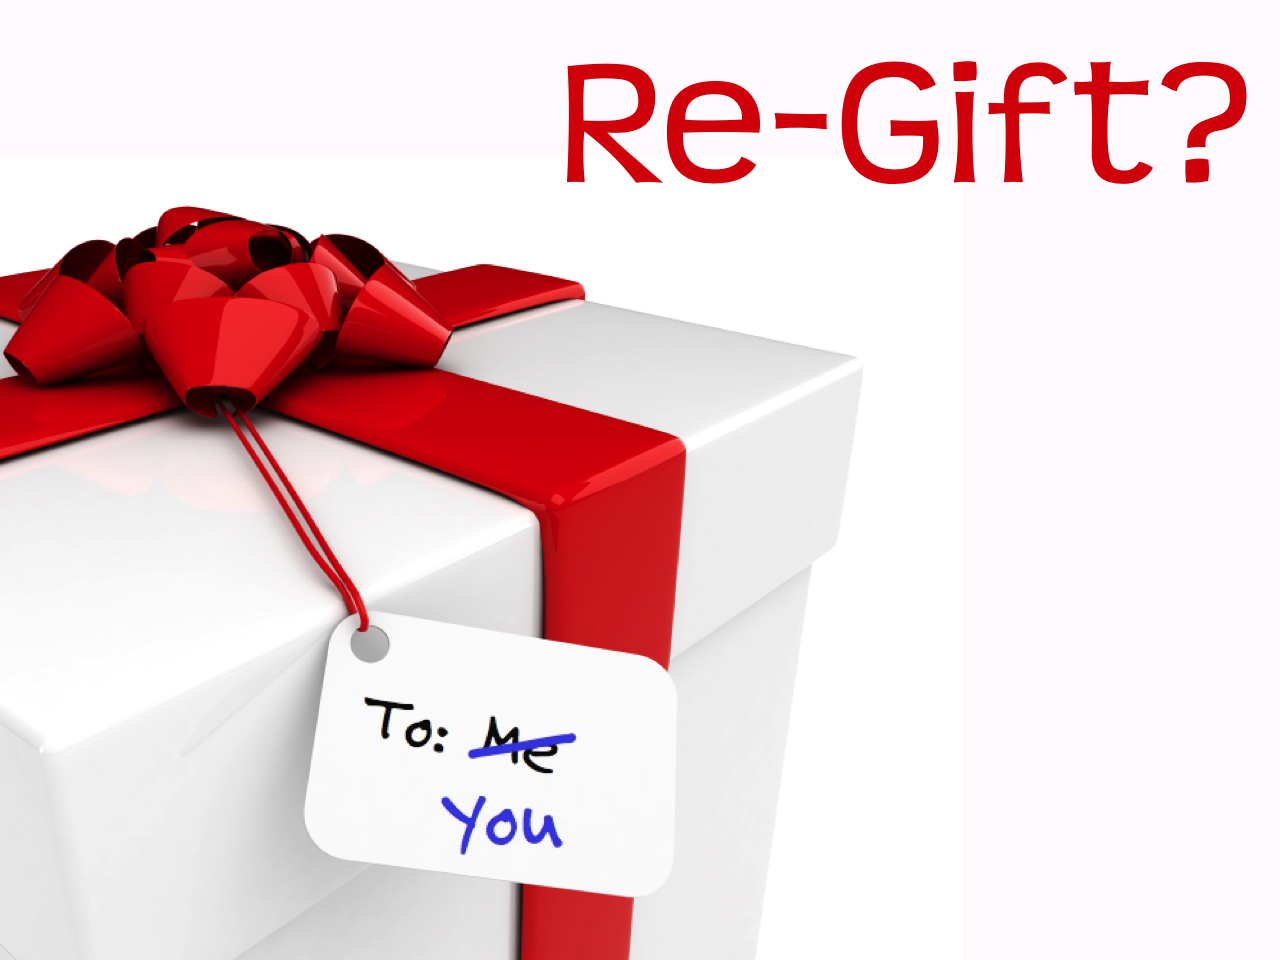 How often do we re-gift after Christmas?